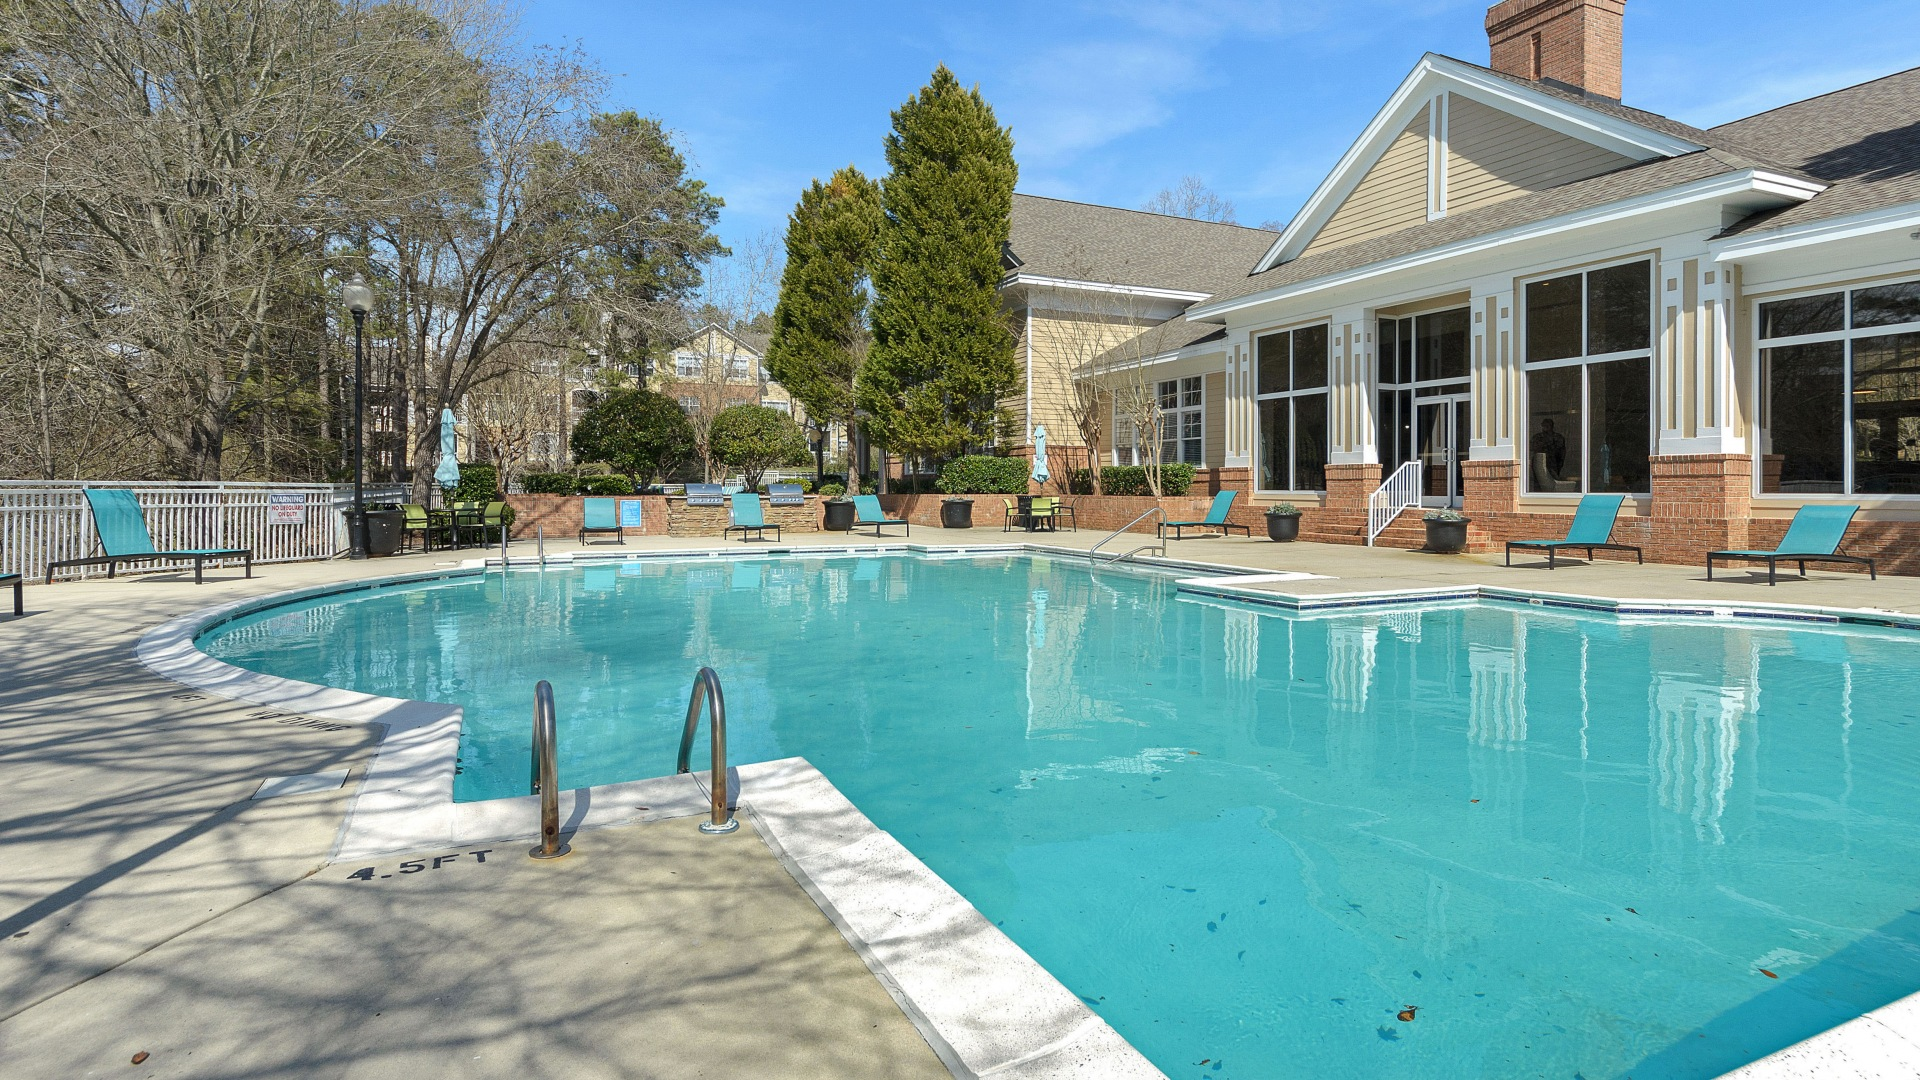 Resort-Style Pool And Sun Deck at Our Luxury Apartments Near RDU Airport